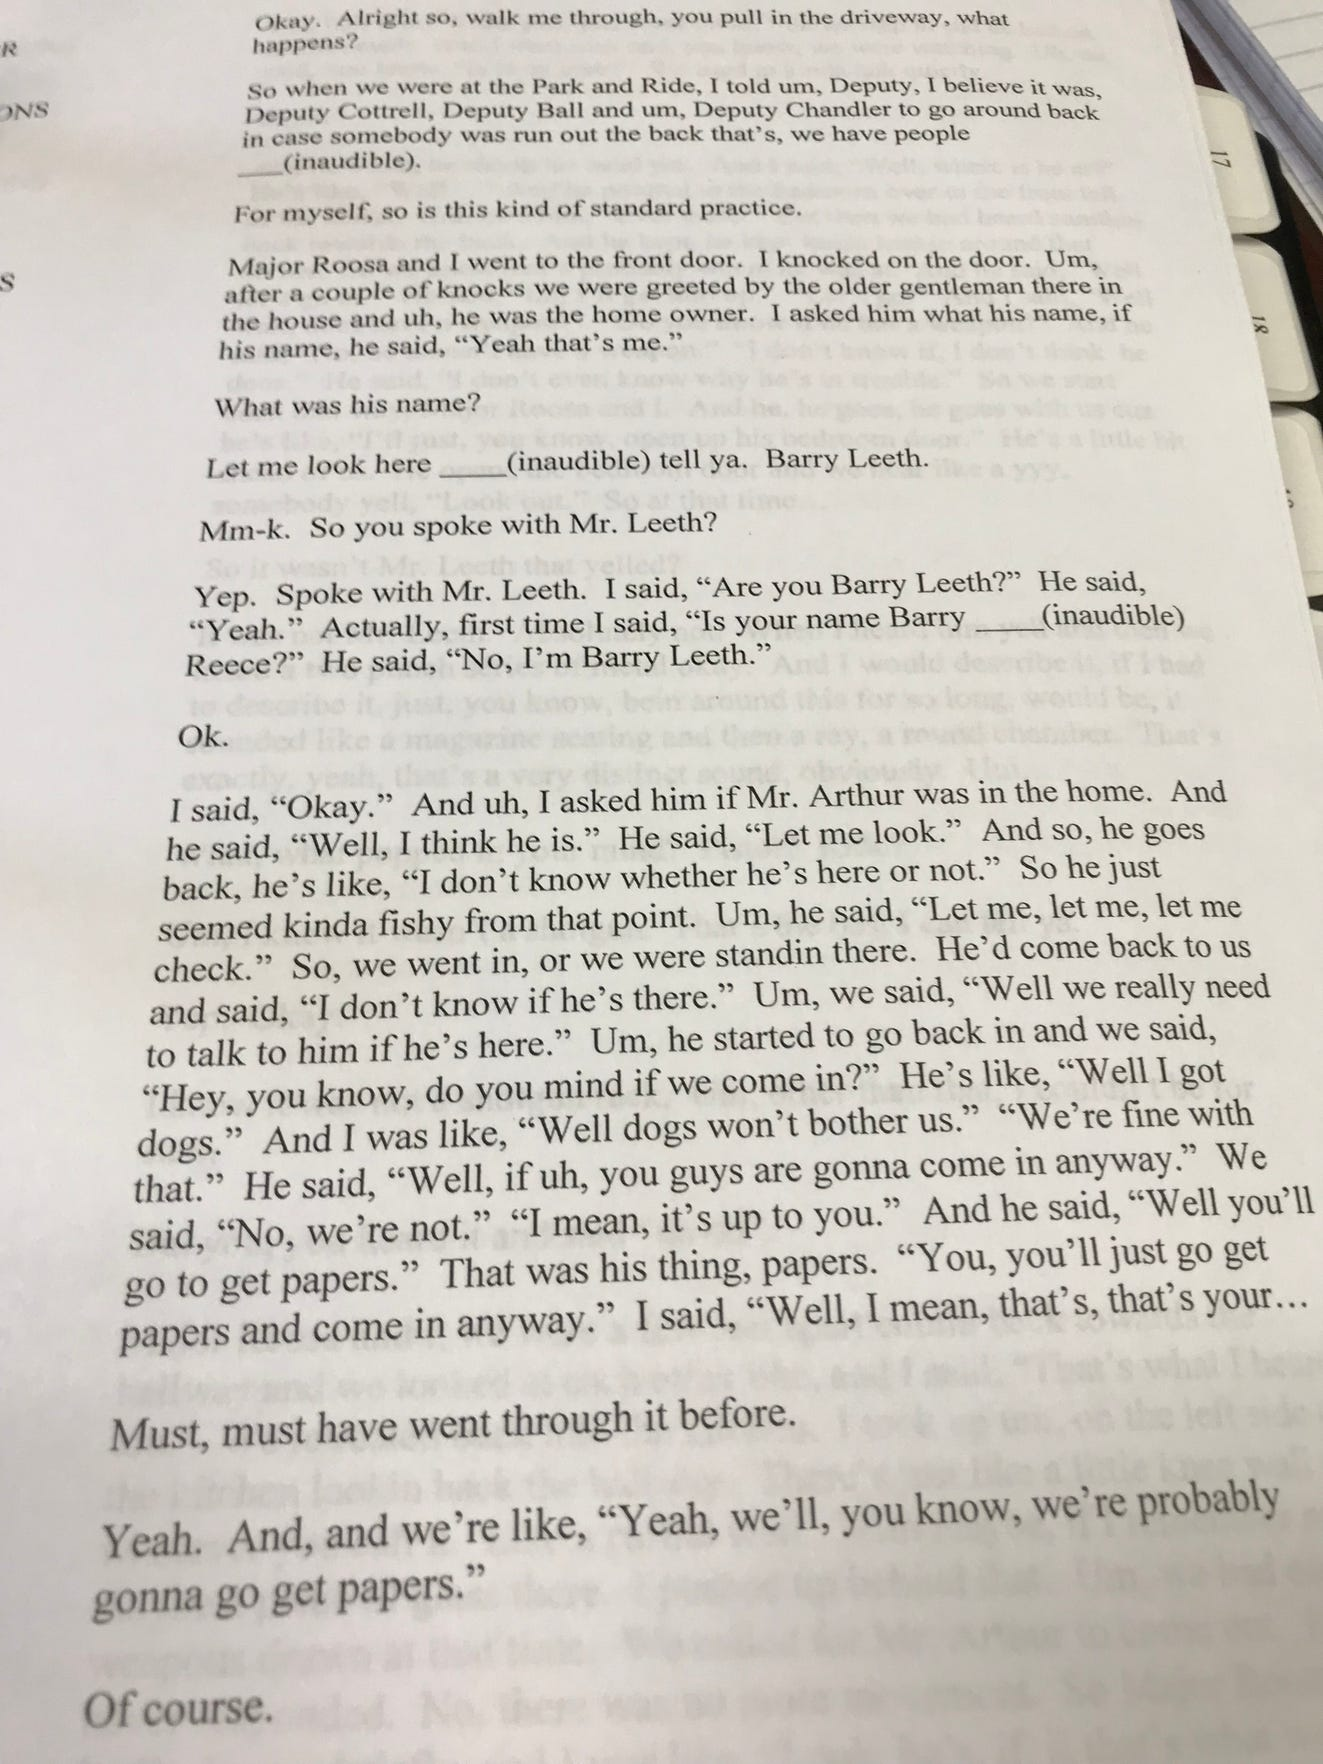 A transcript of an interview Pike County Sheriff's Sgt. Brock Clemmons outlines their interaction with Barry Leeth.